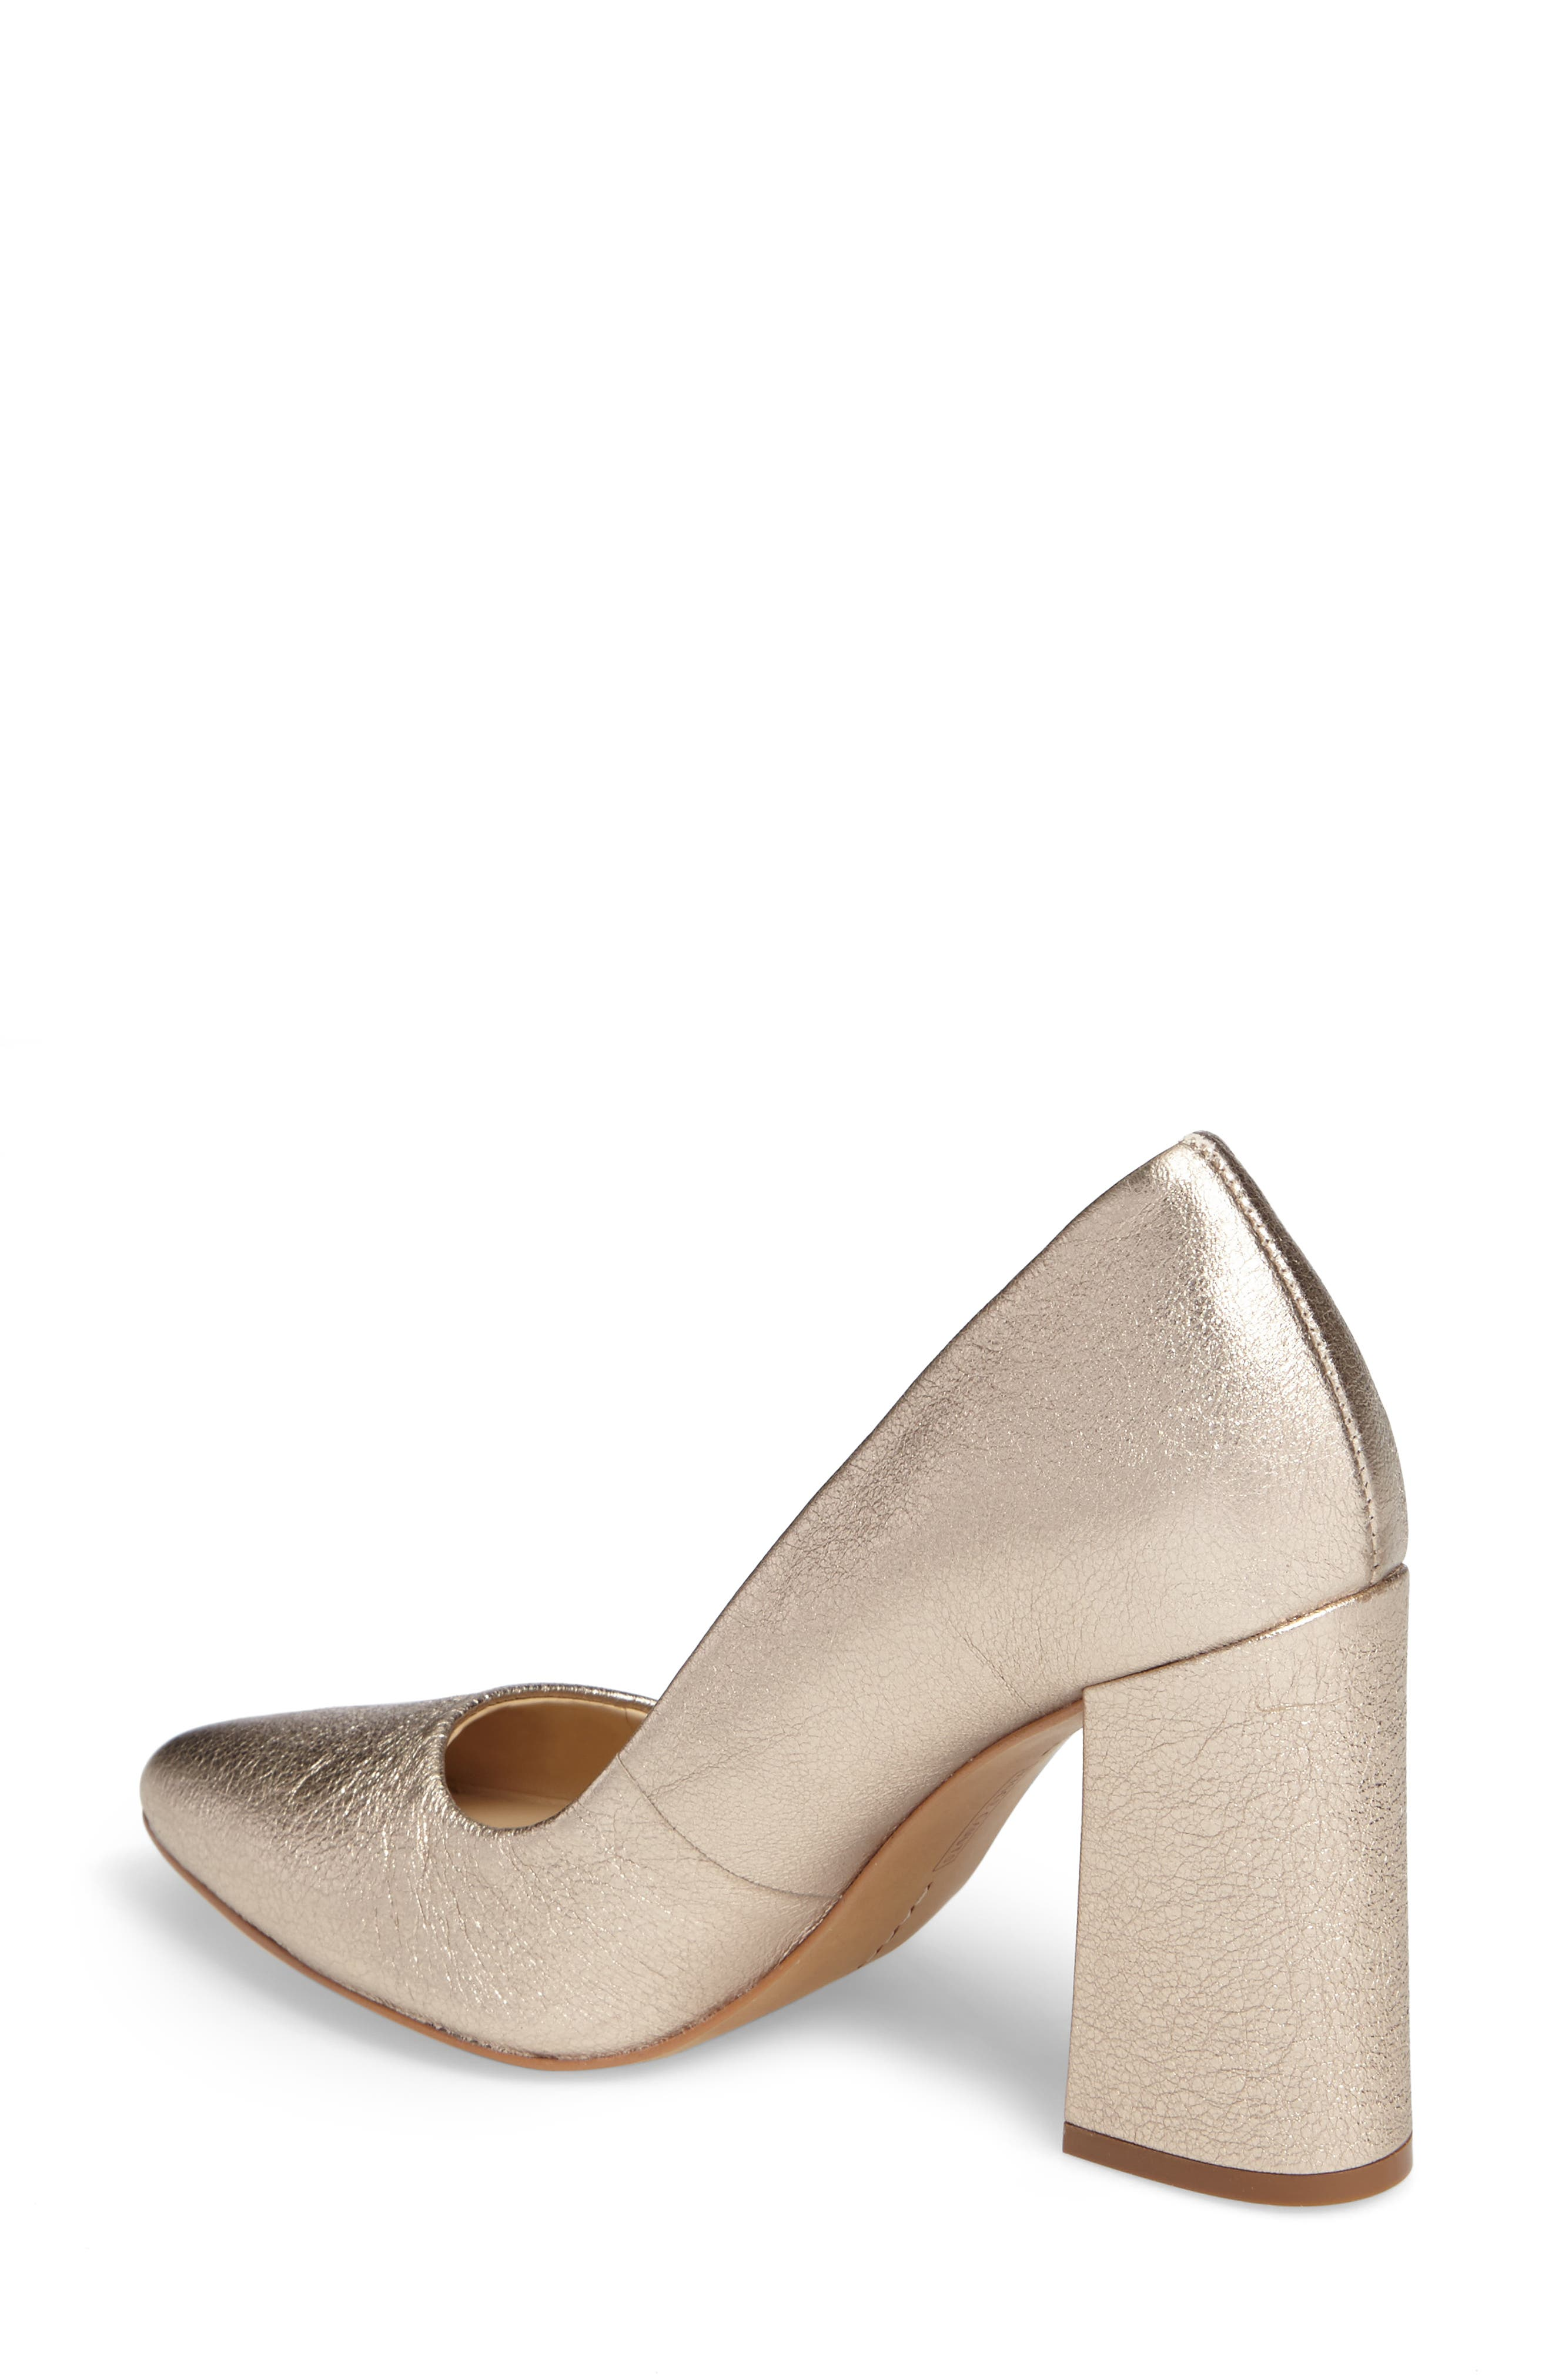 Alternate Image 2  - Vince Camuto Talise Pointy Toe Pump (Women)